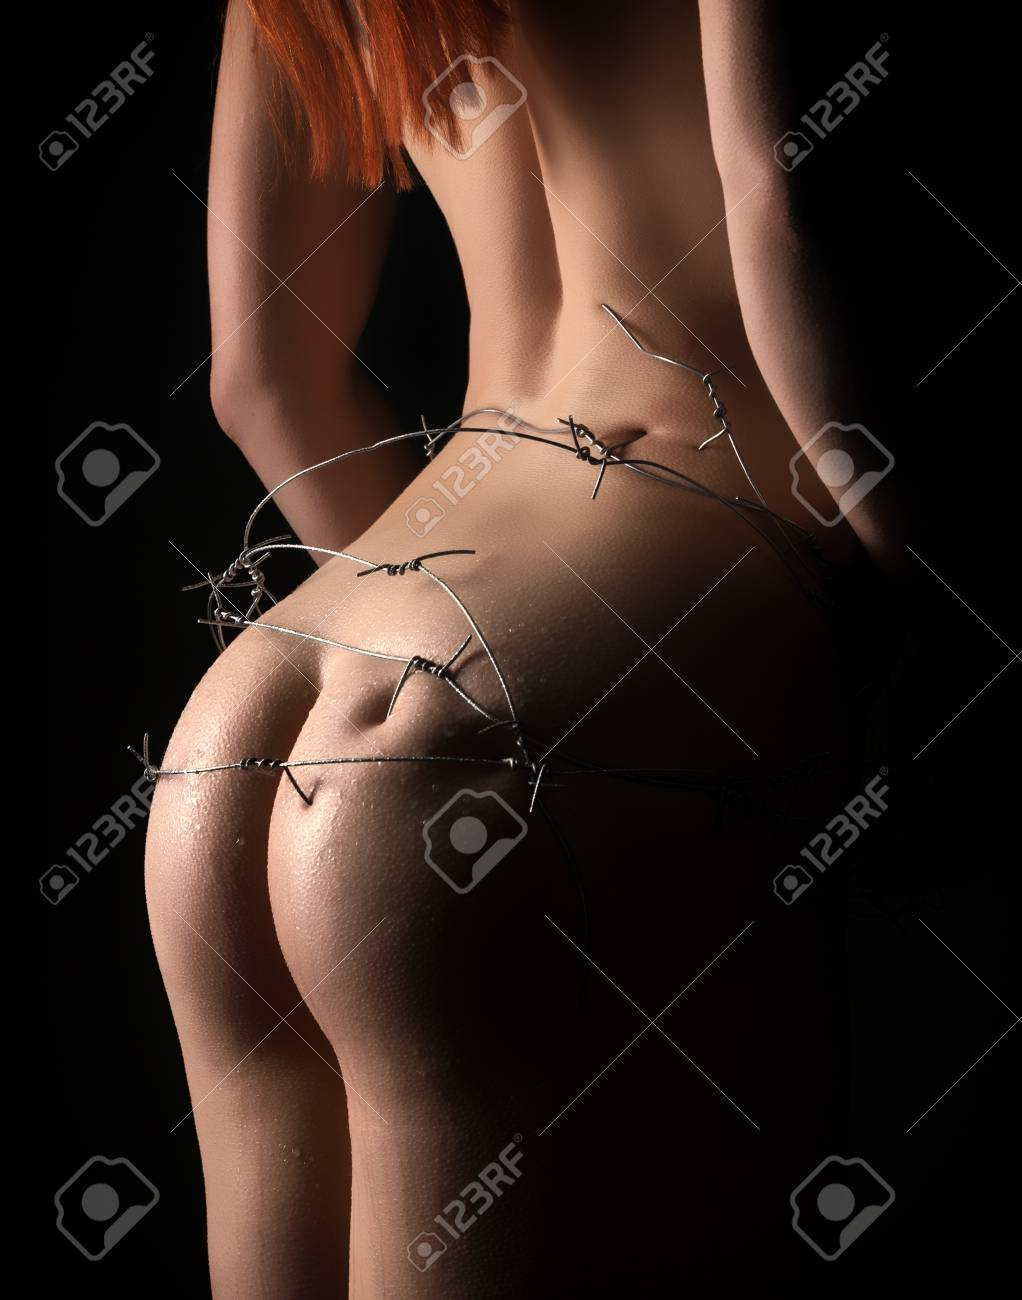 Barbed Wire Nude